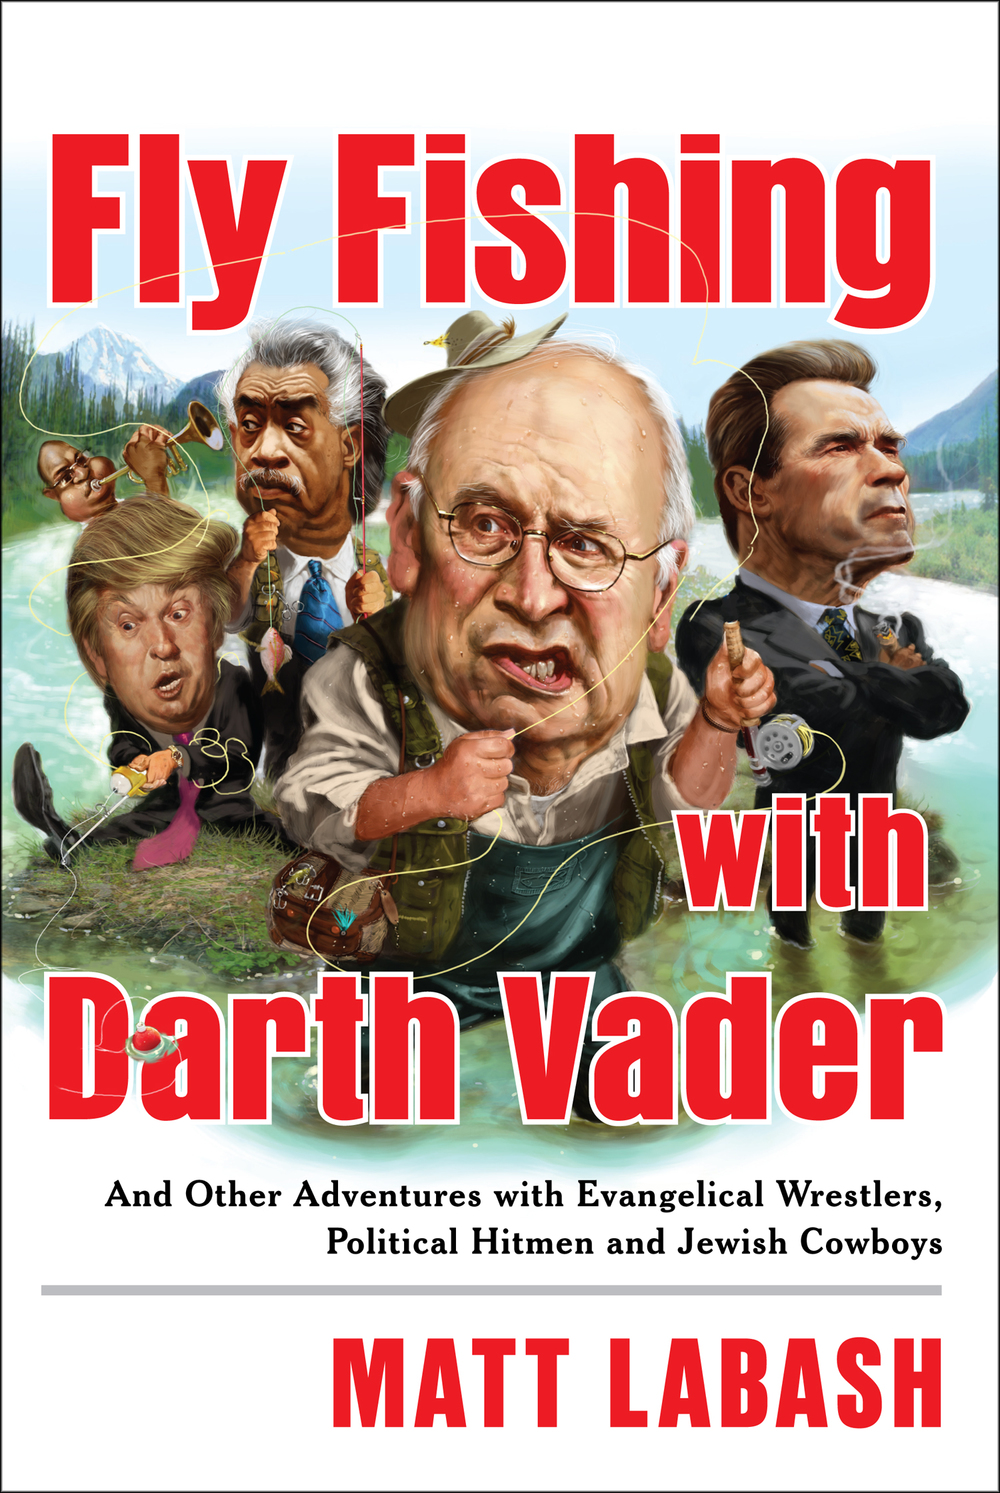 FLY-FISHING-WITH-DARTH-VADER-ss6.jpg